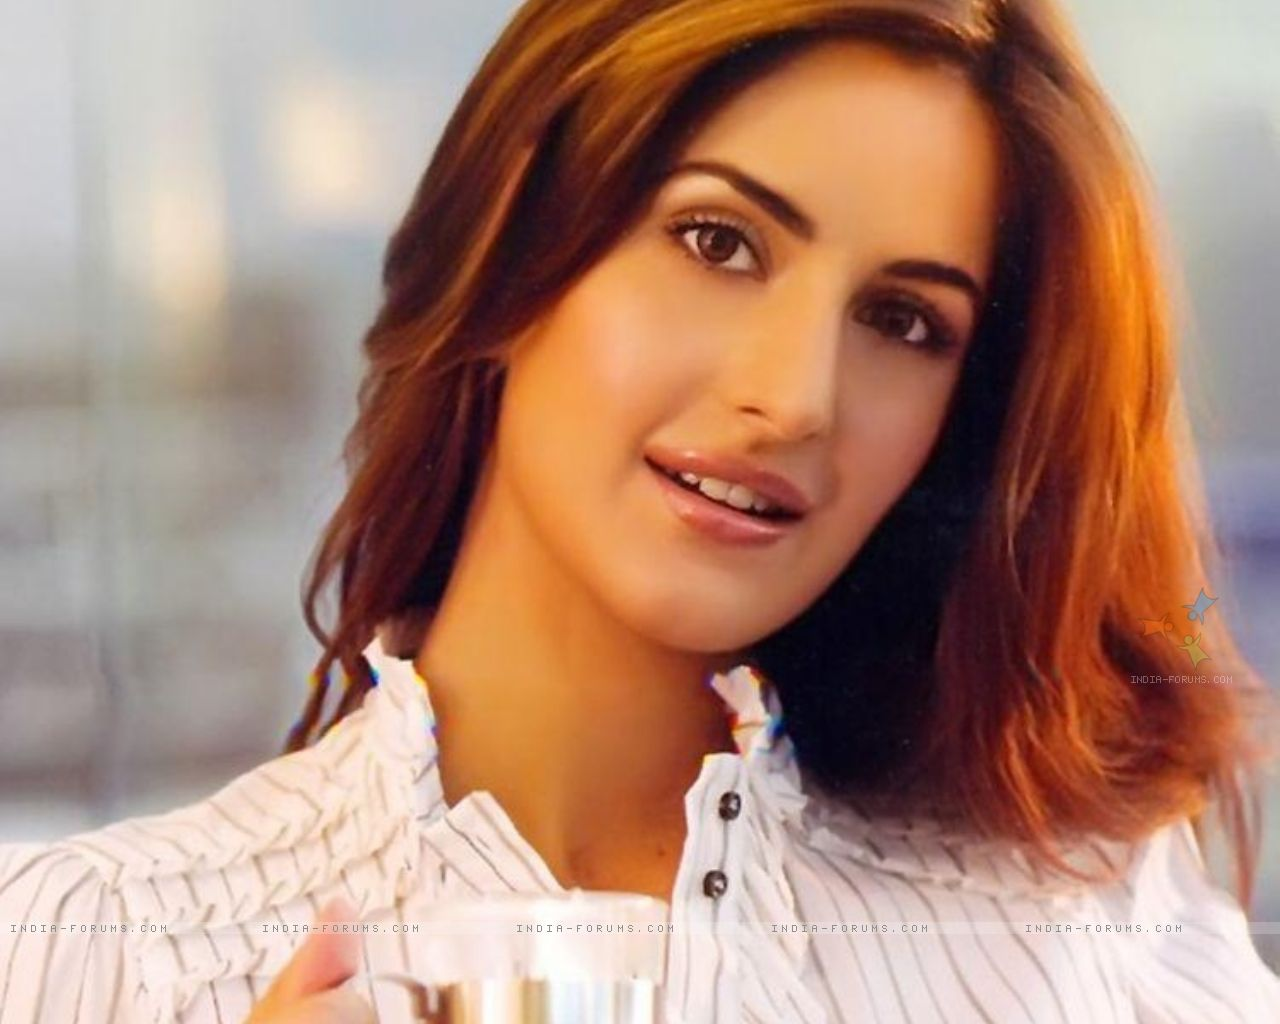 Katrina Waif HD wallpaper Free Download 2015